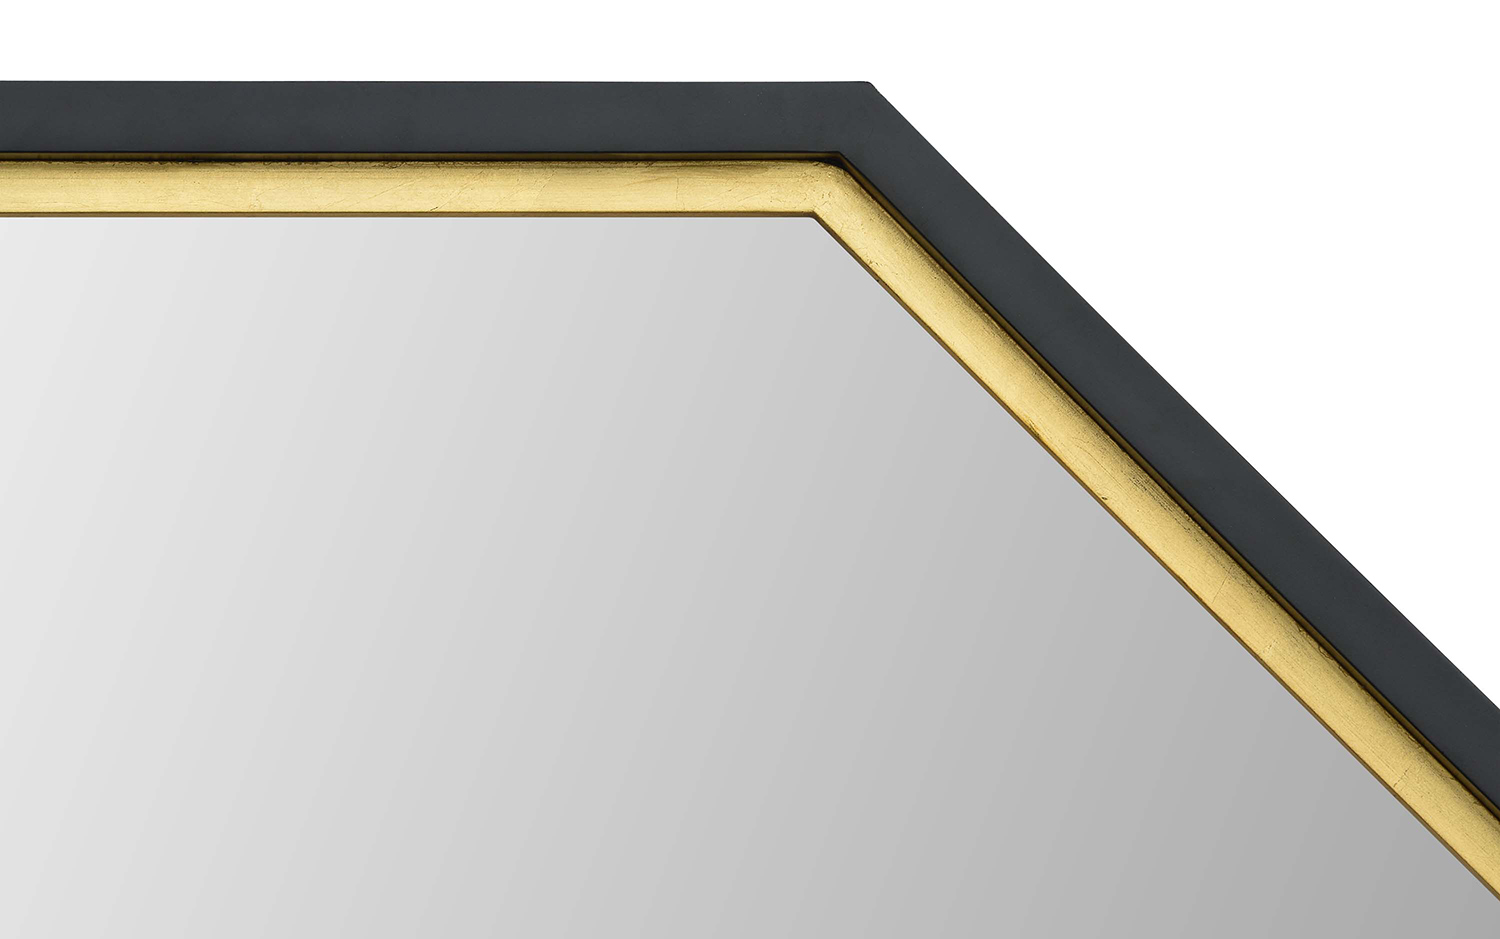 Ren-Wil Octo Octagon Mirror - Black Painted And Gold Leaf